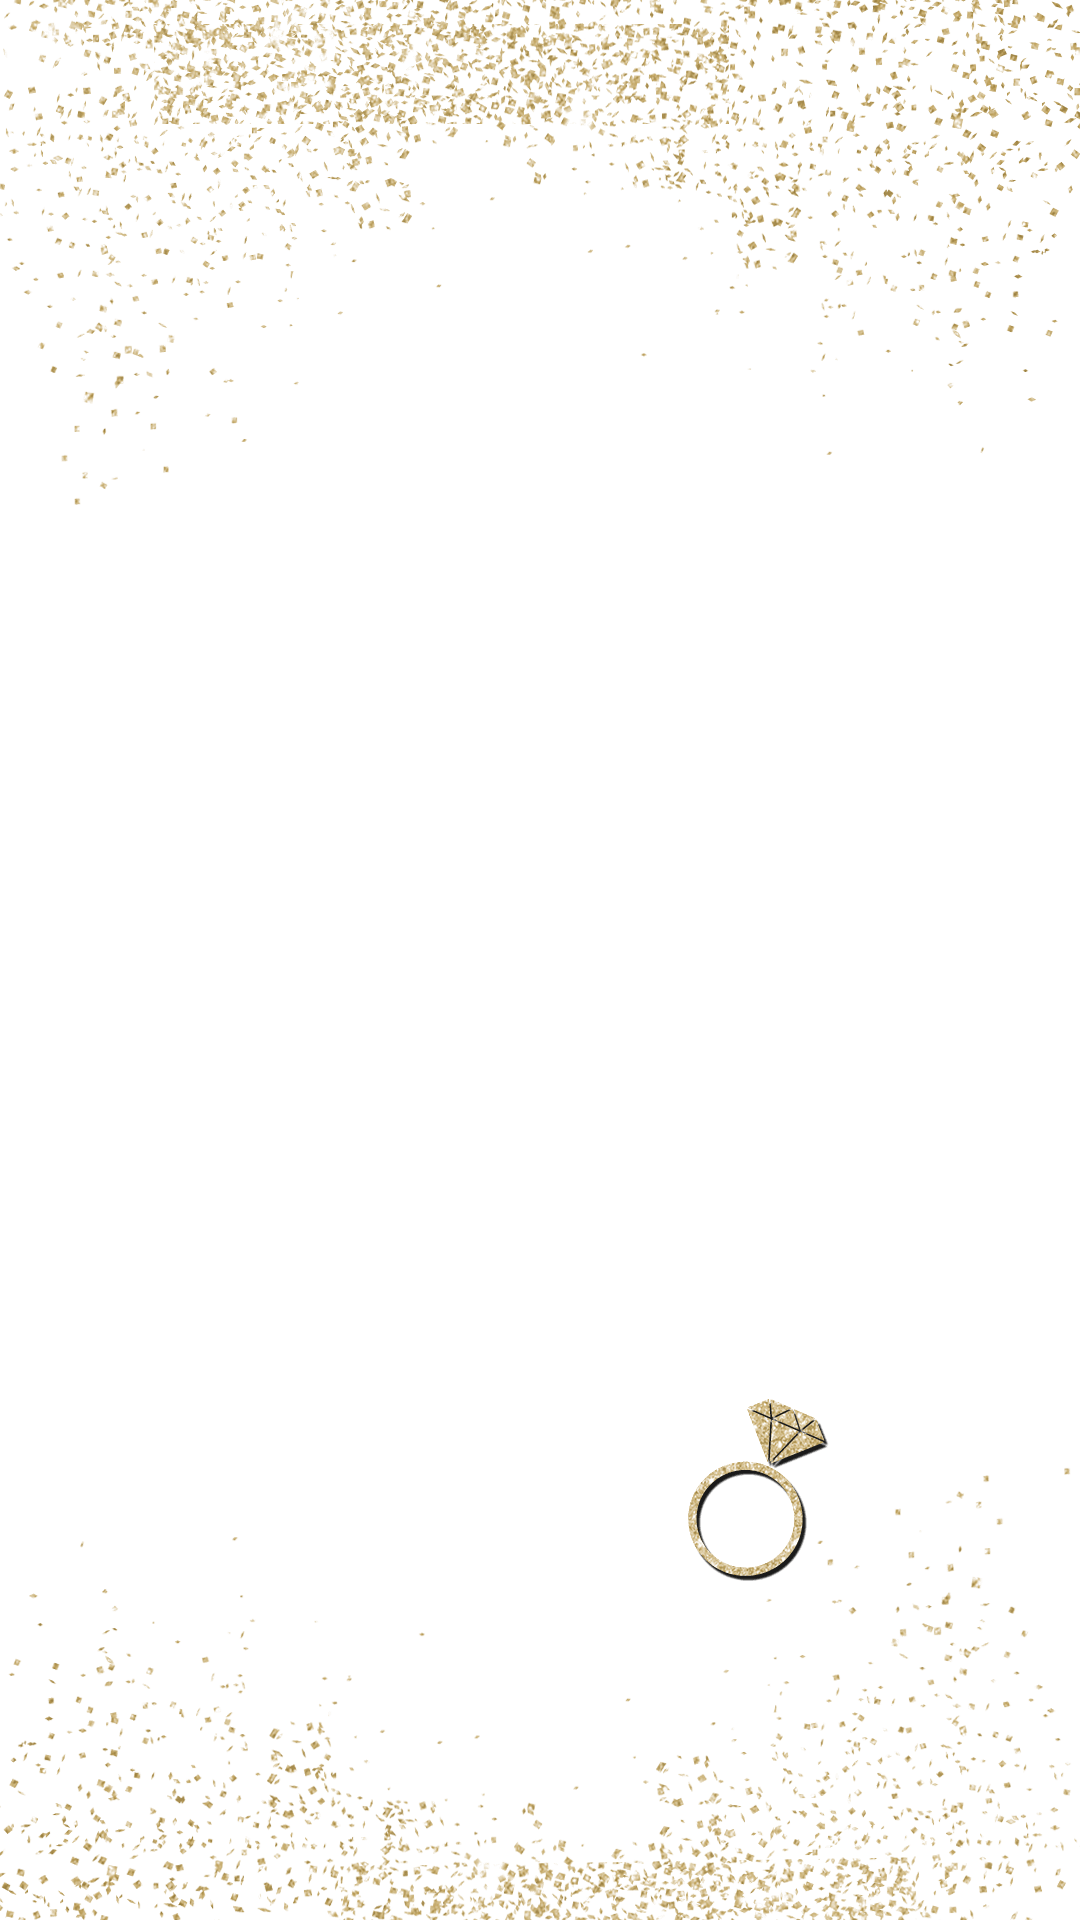 Gold sparkle png. Engagement snapchat filter geofilter